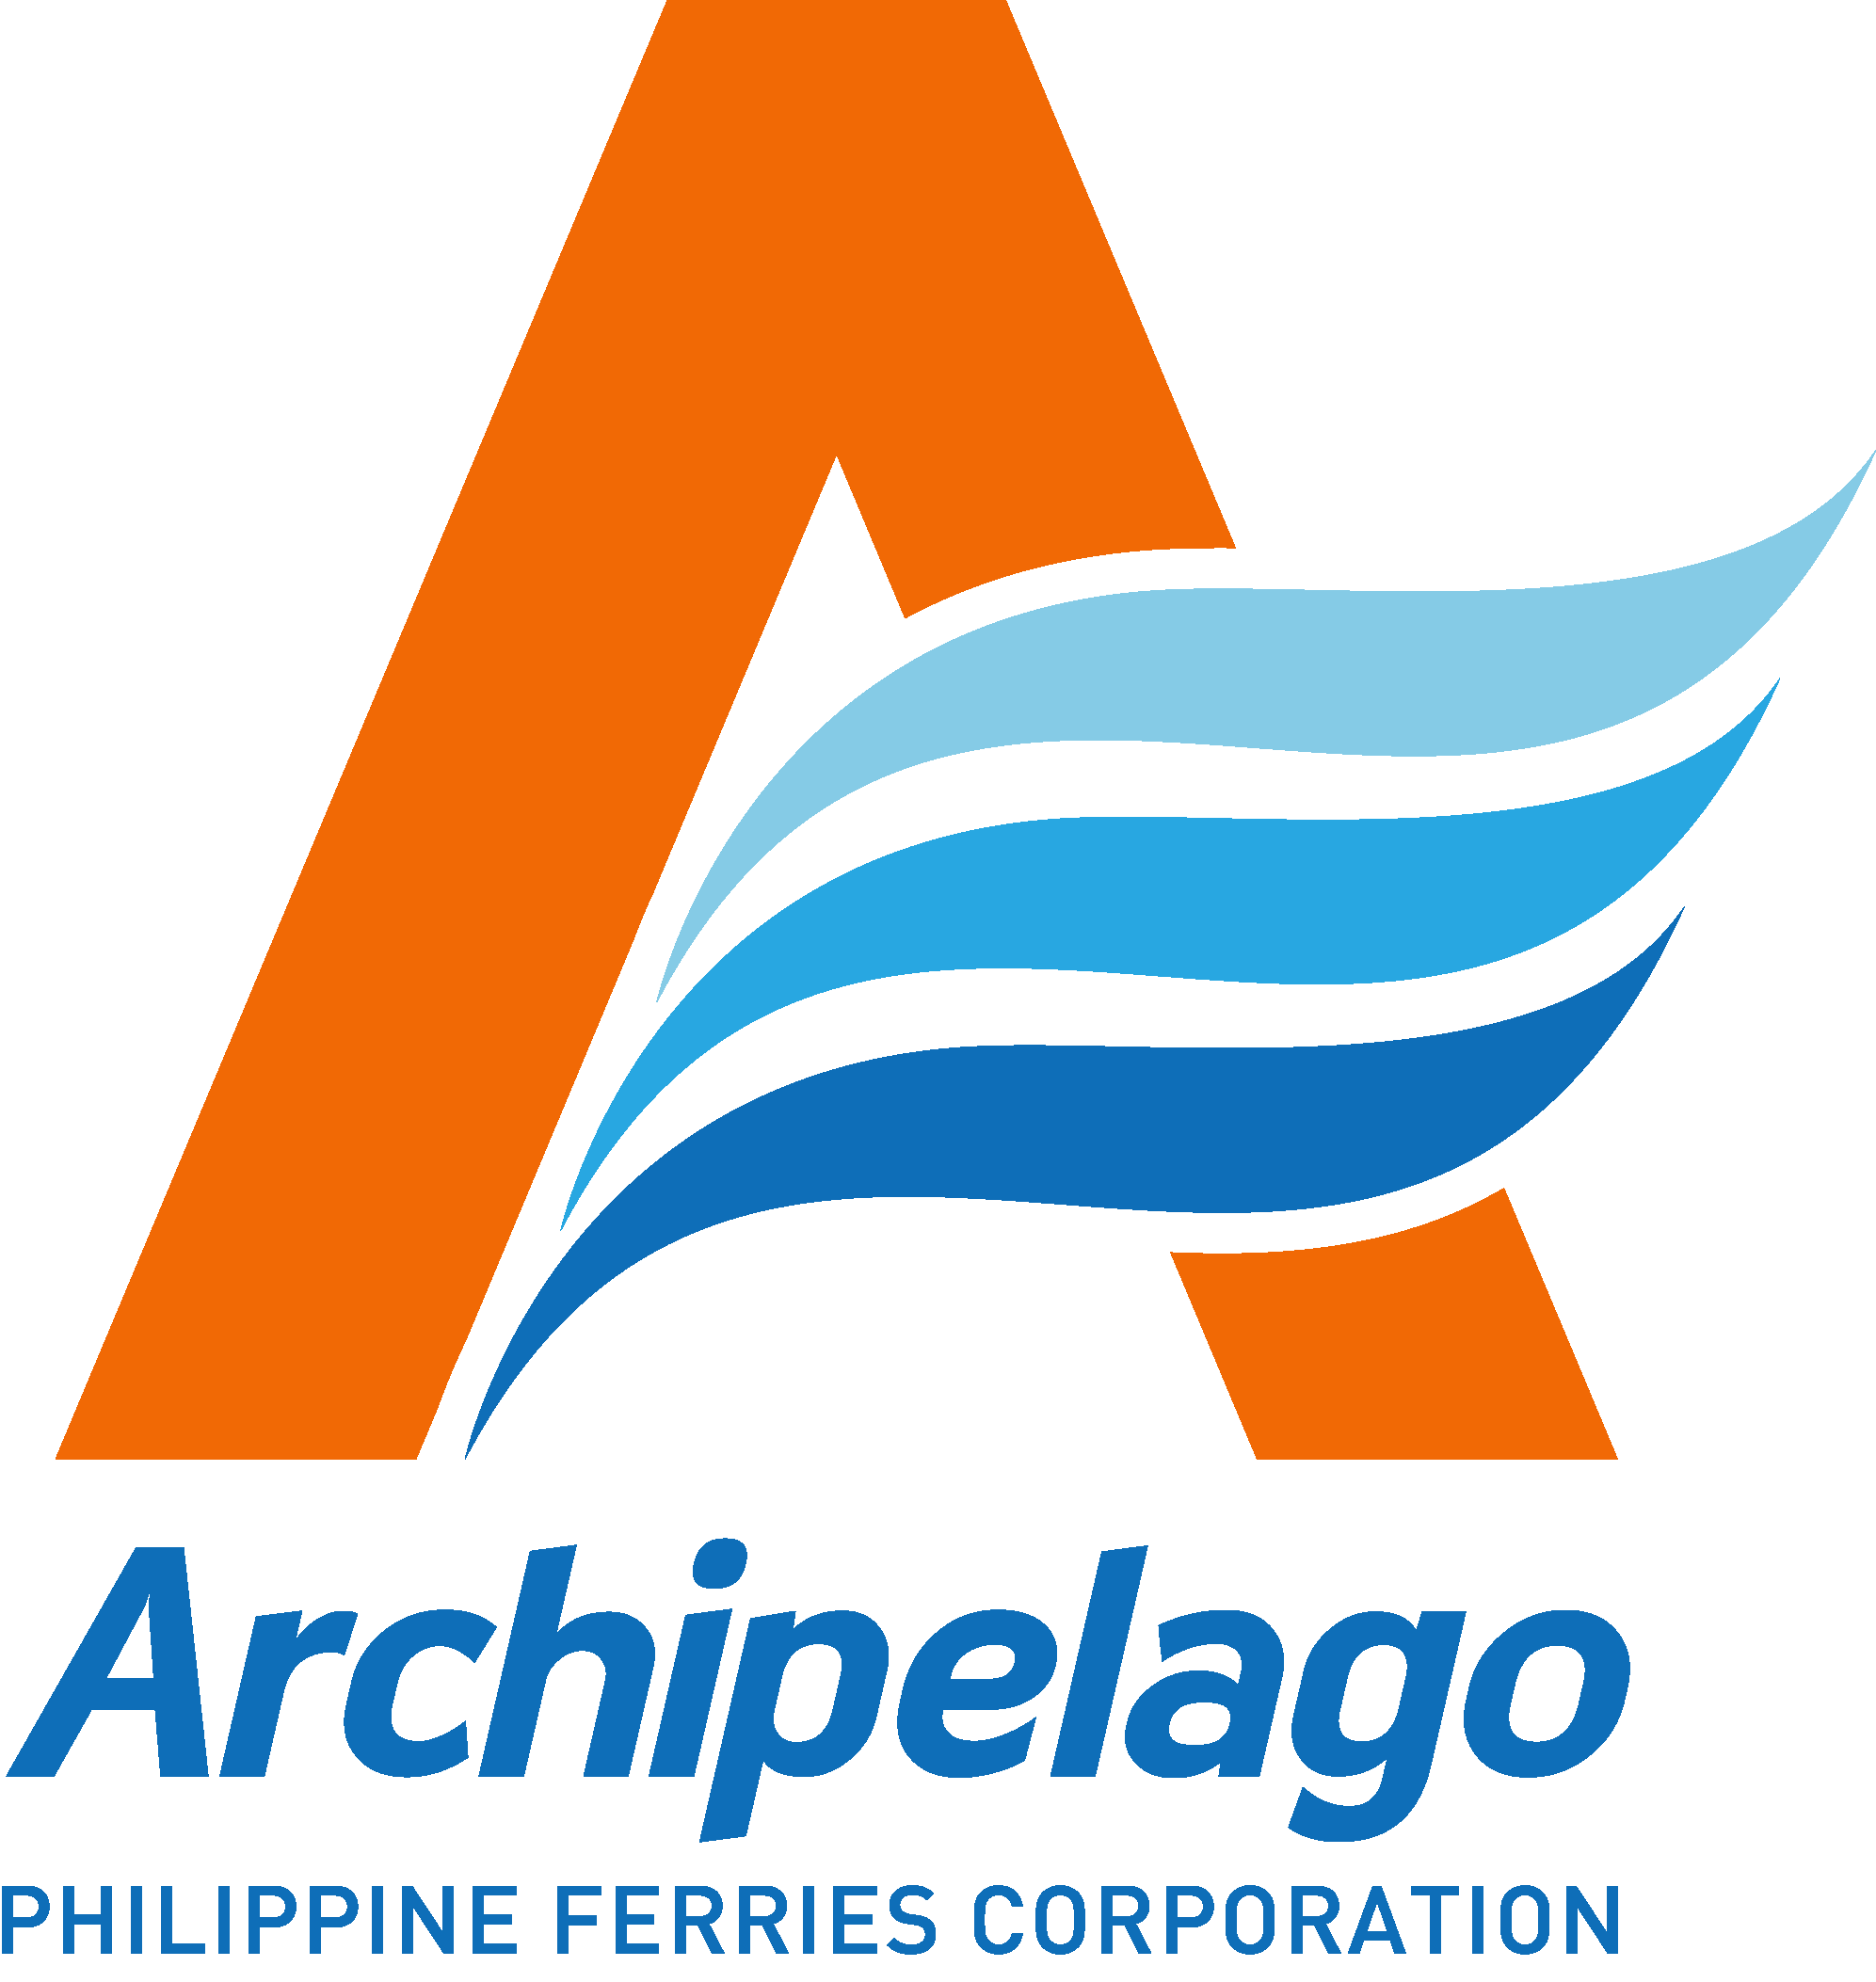 Archipelago Philippine Ferries Inc.